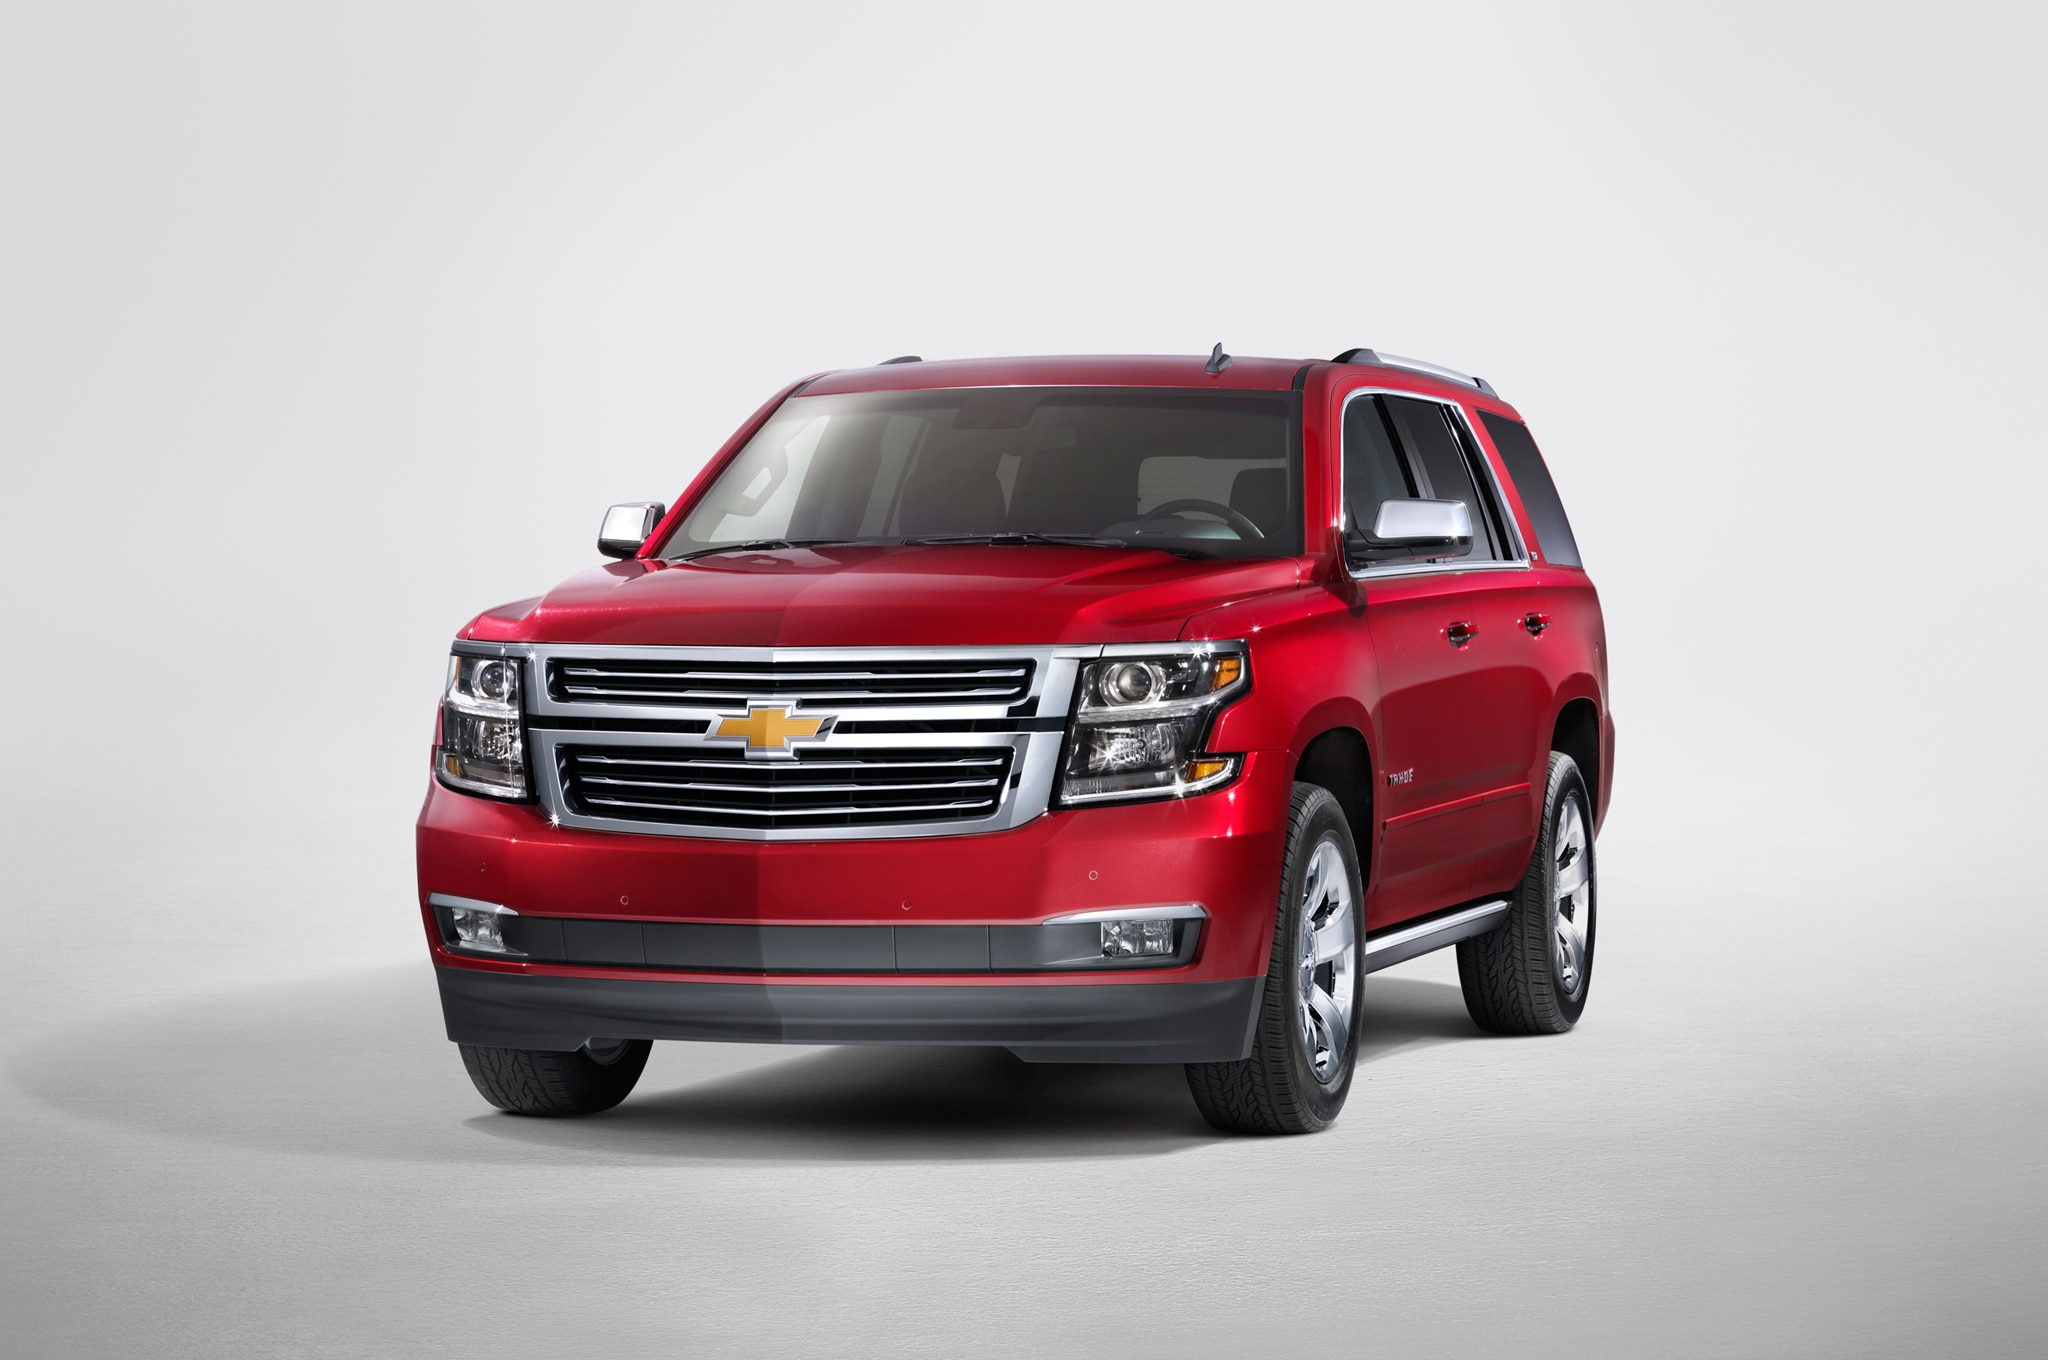 2015 Chevrolet Tahoe Front Angle1